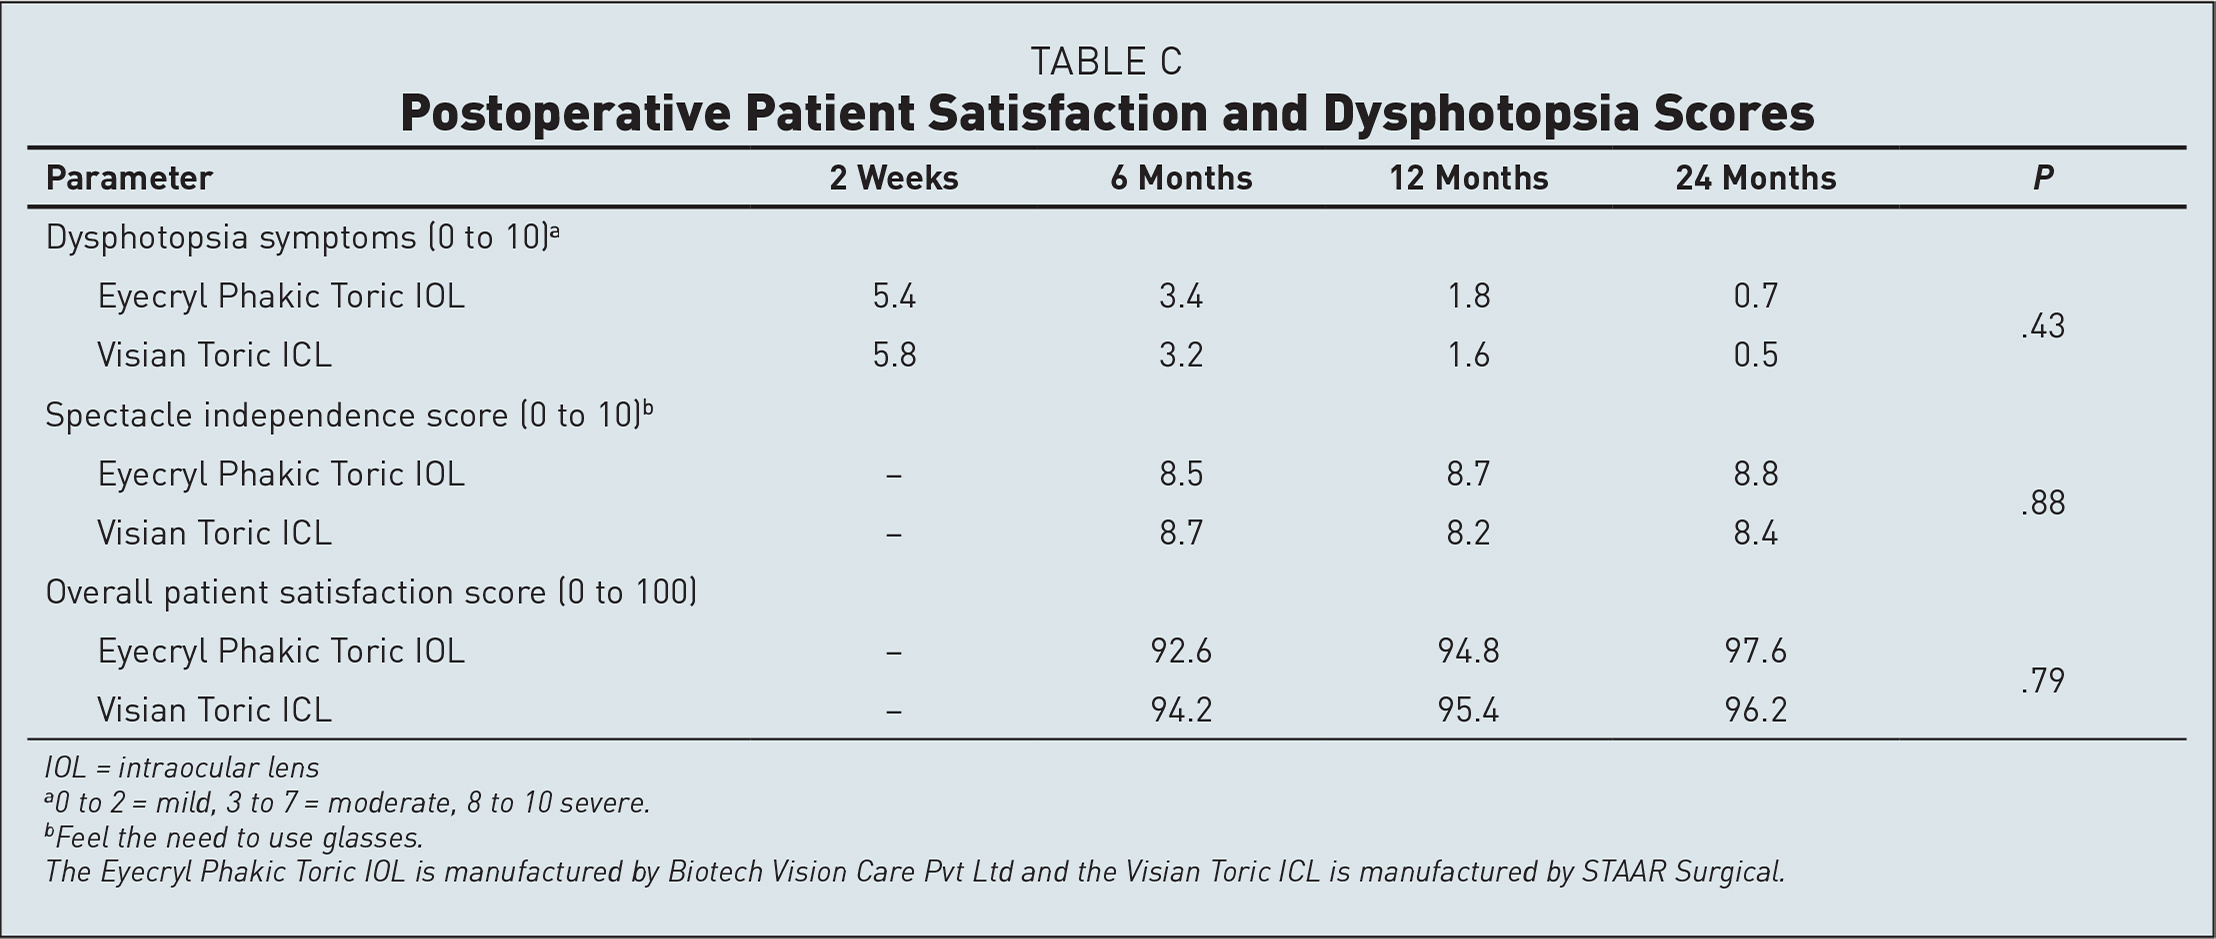 Postoperative Patient Satisfaction and Dysphotopsia Scores